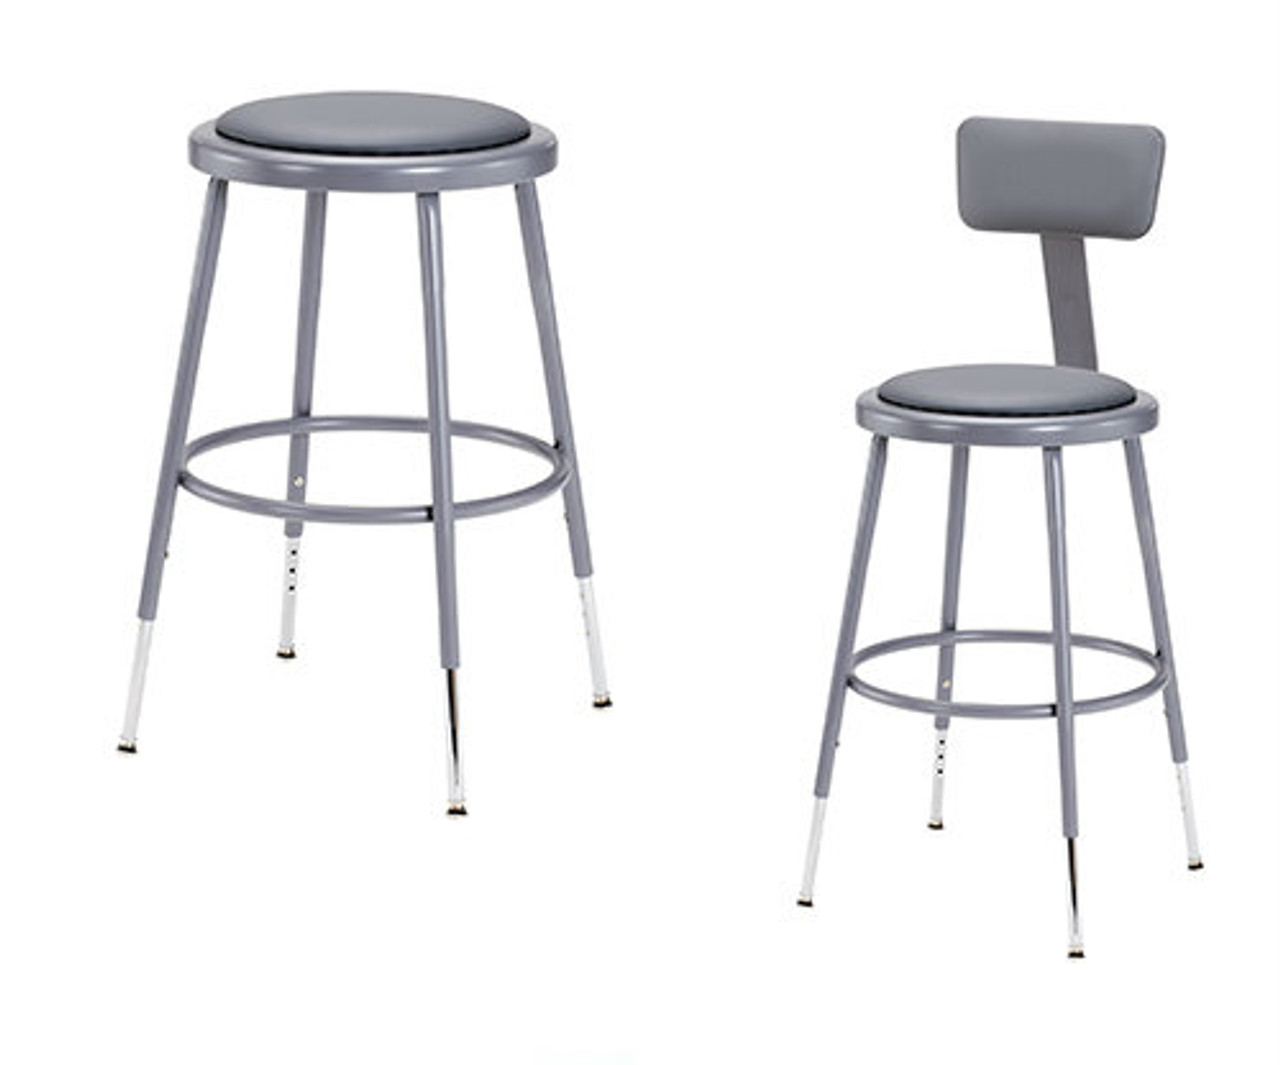 Cool Gray Adjustable Round Science Lab Stool With Padded Seat And Optional Backrest By National Public Seating Creativecarmelina Interior Chair Design Creativecarmelinacom